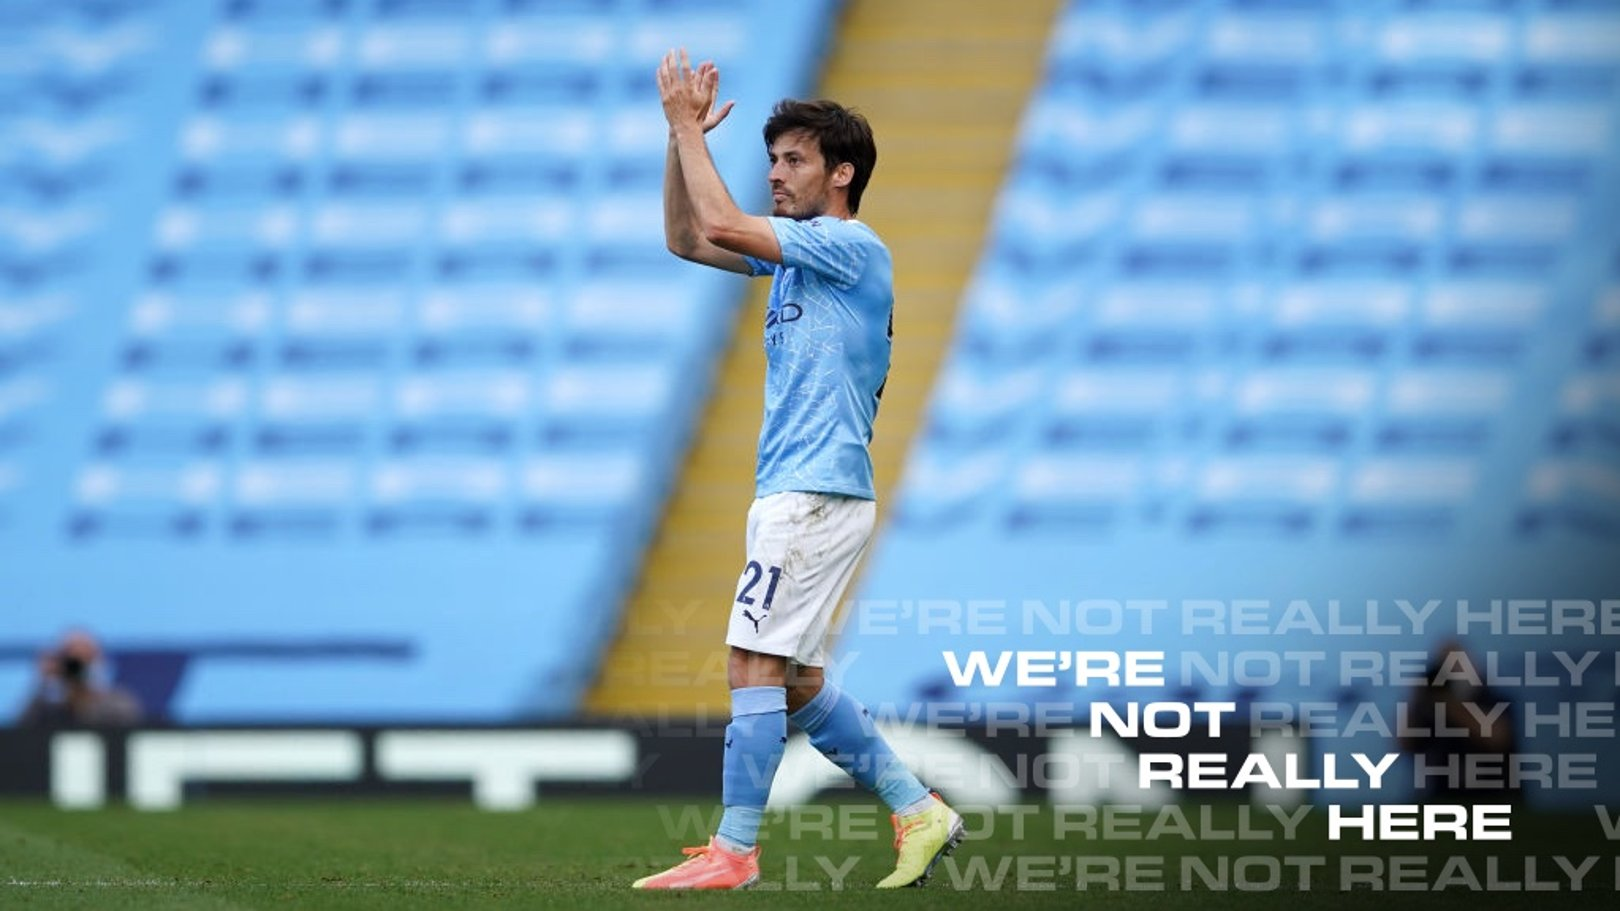 EL MAGO: Silva makes his way off the pitch after his final league appearance for City.